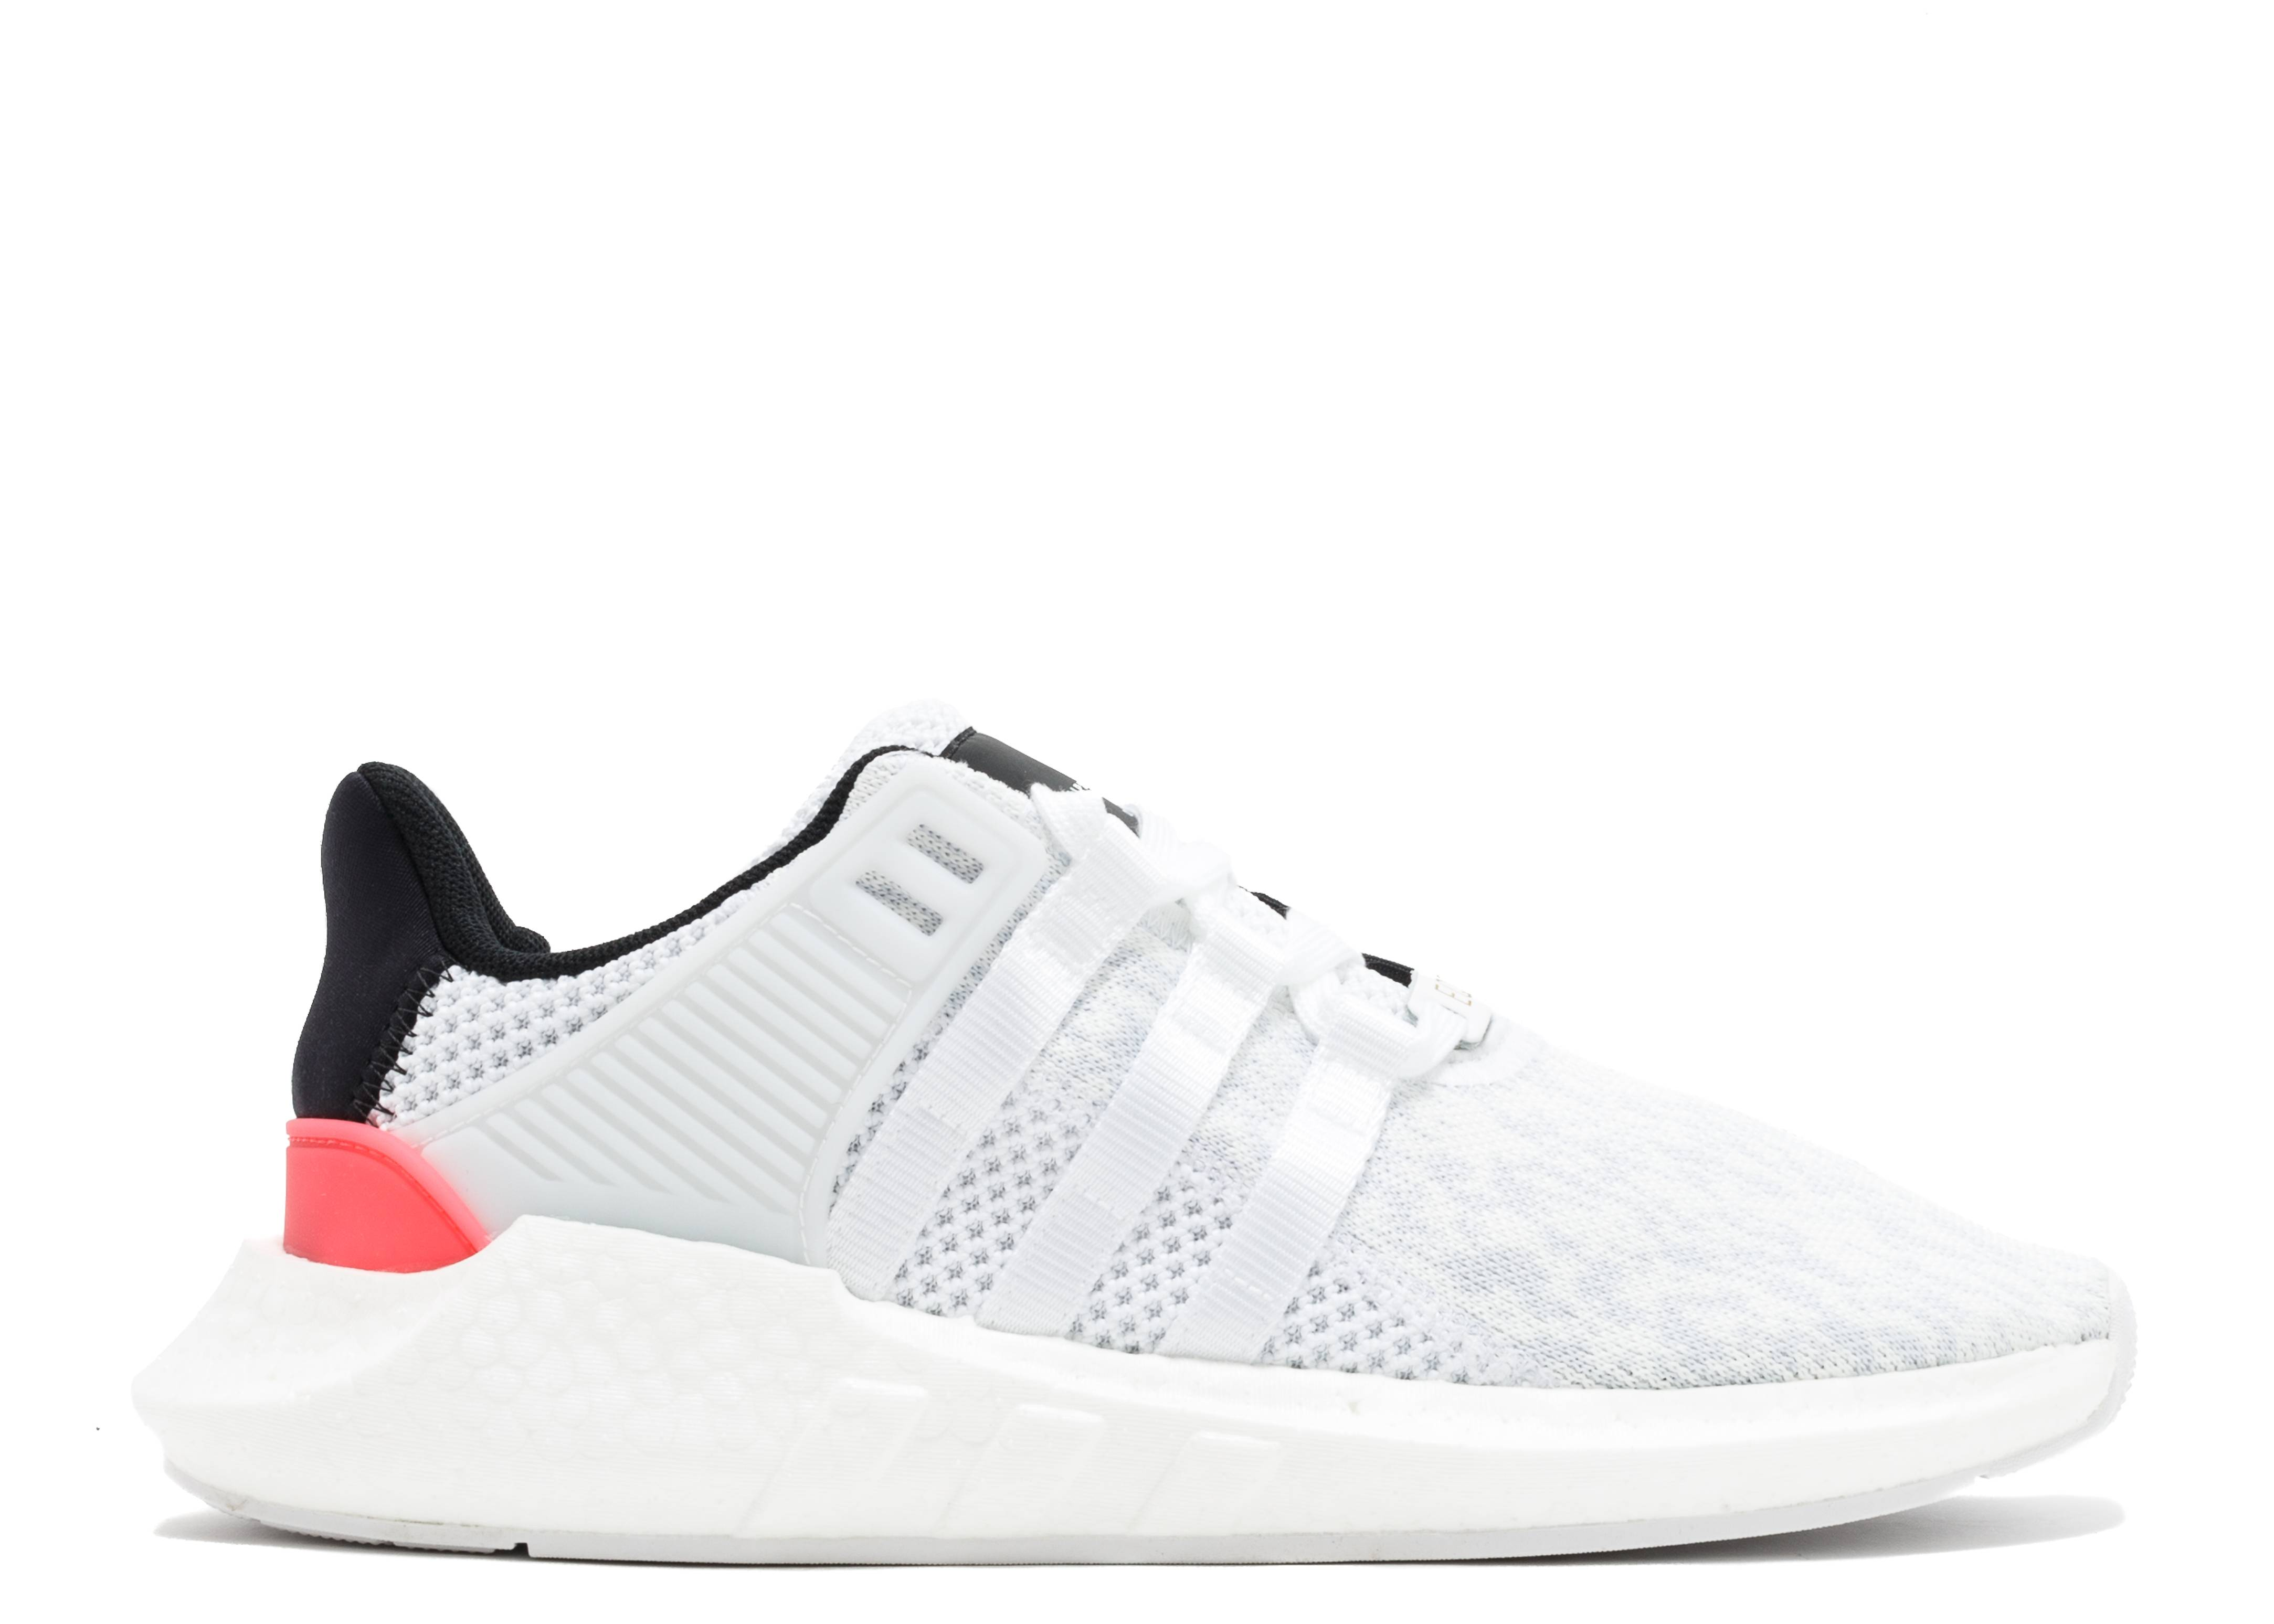 online retailer e1662 fe577 Eqt Support 9317 black white ZXEQT Series Adidas White EQT Athletic  Sneakers sale Cheap Adidas US eqt support 9317 ...